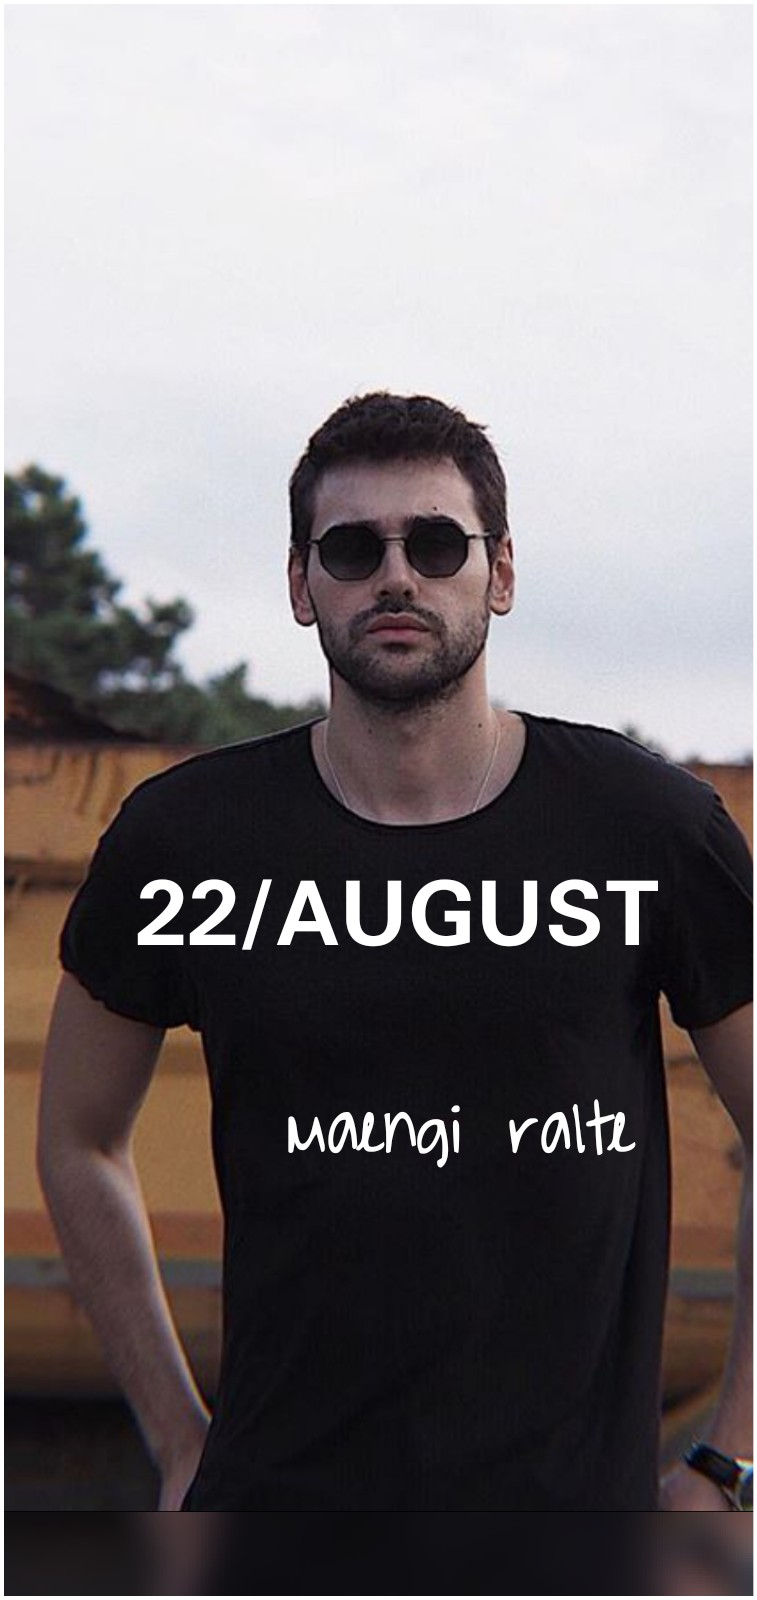 22/AUGUST- 17